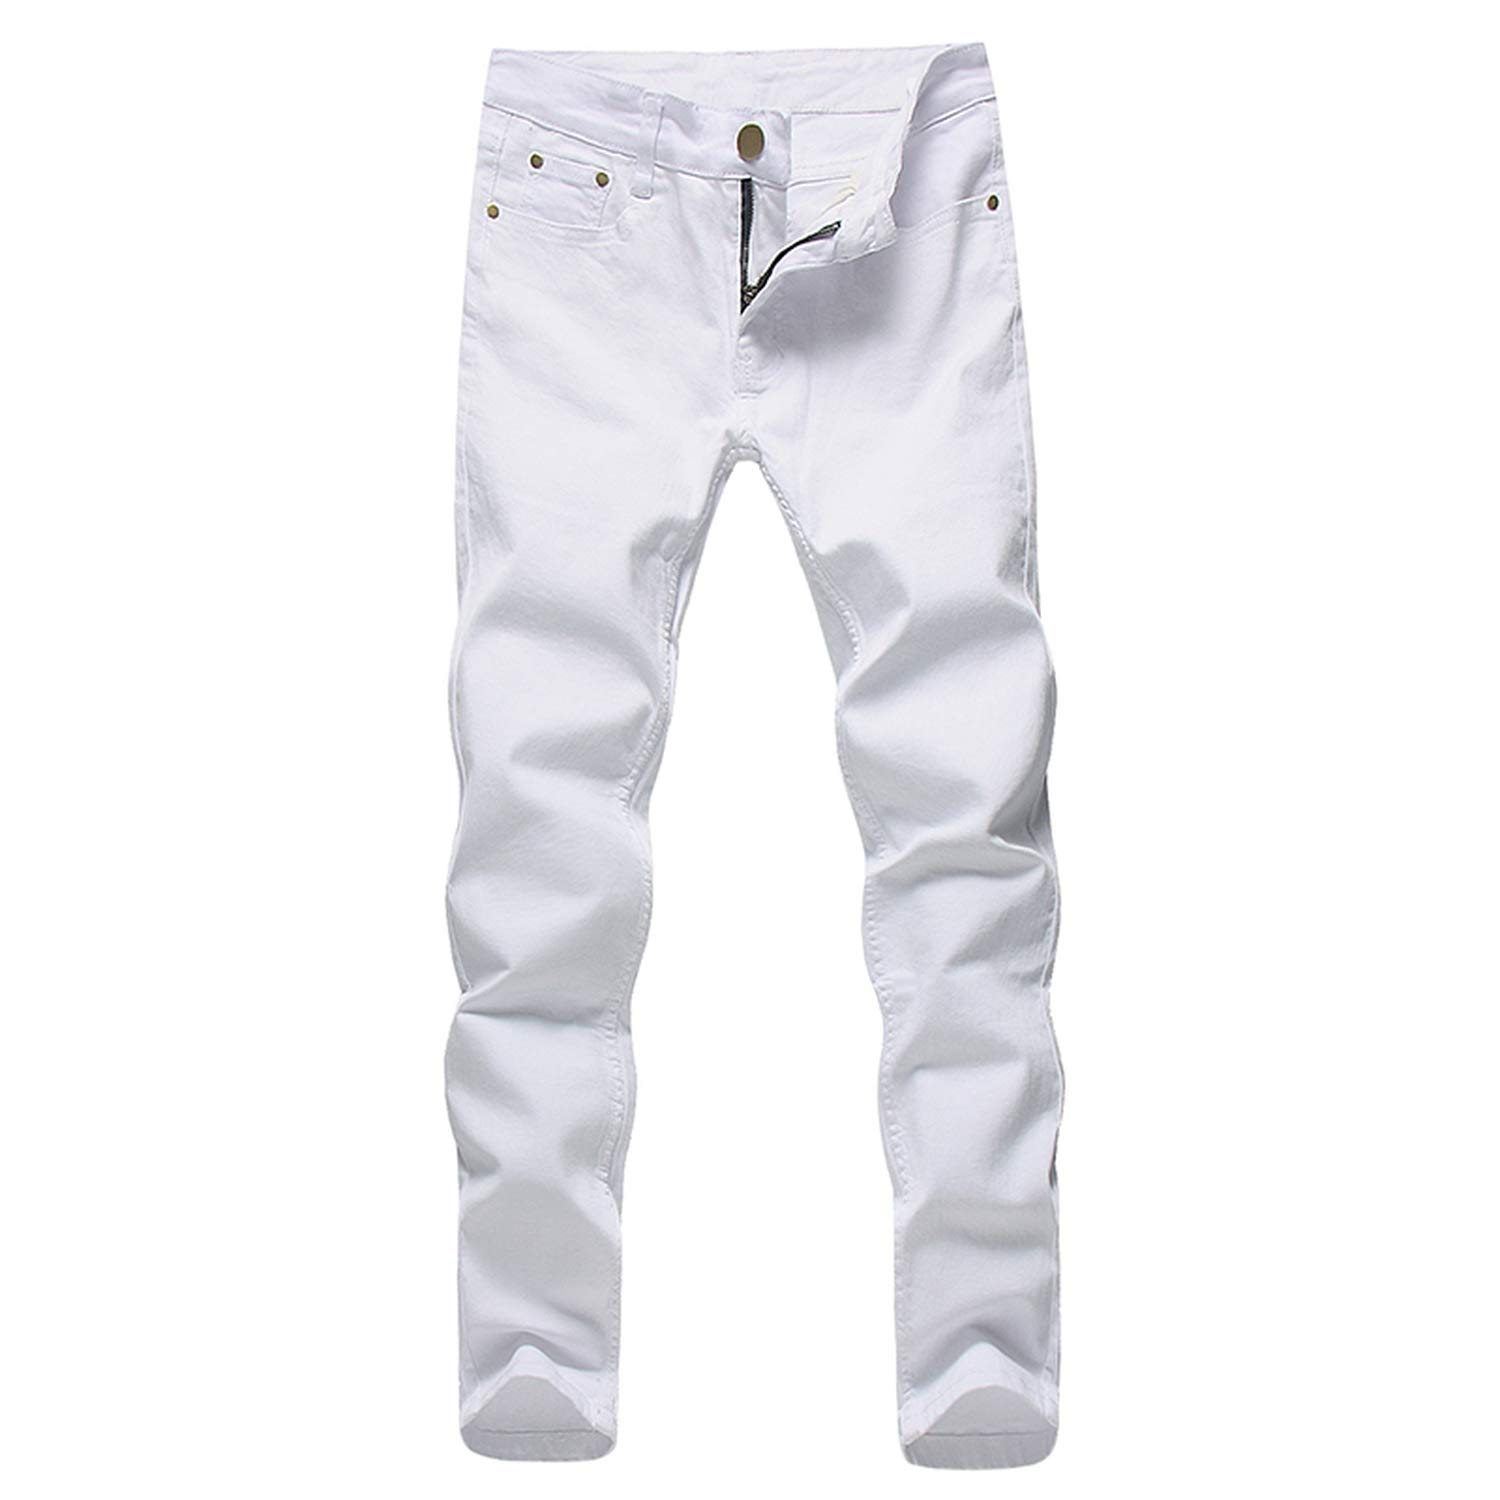 Nutsima Men Stretch Jeans Fashion White Denim Trousers for Male Spring and Autumn Retro Pants Casual Mens Jeans Size 27-36